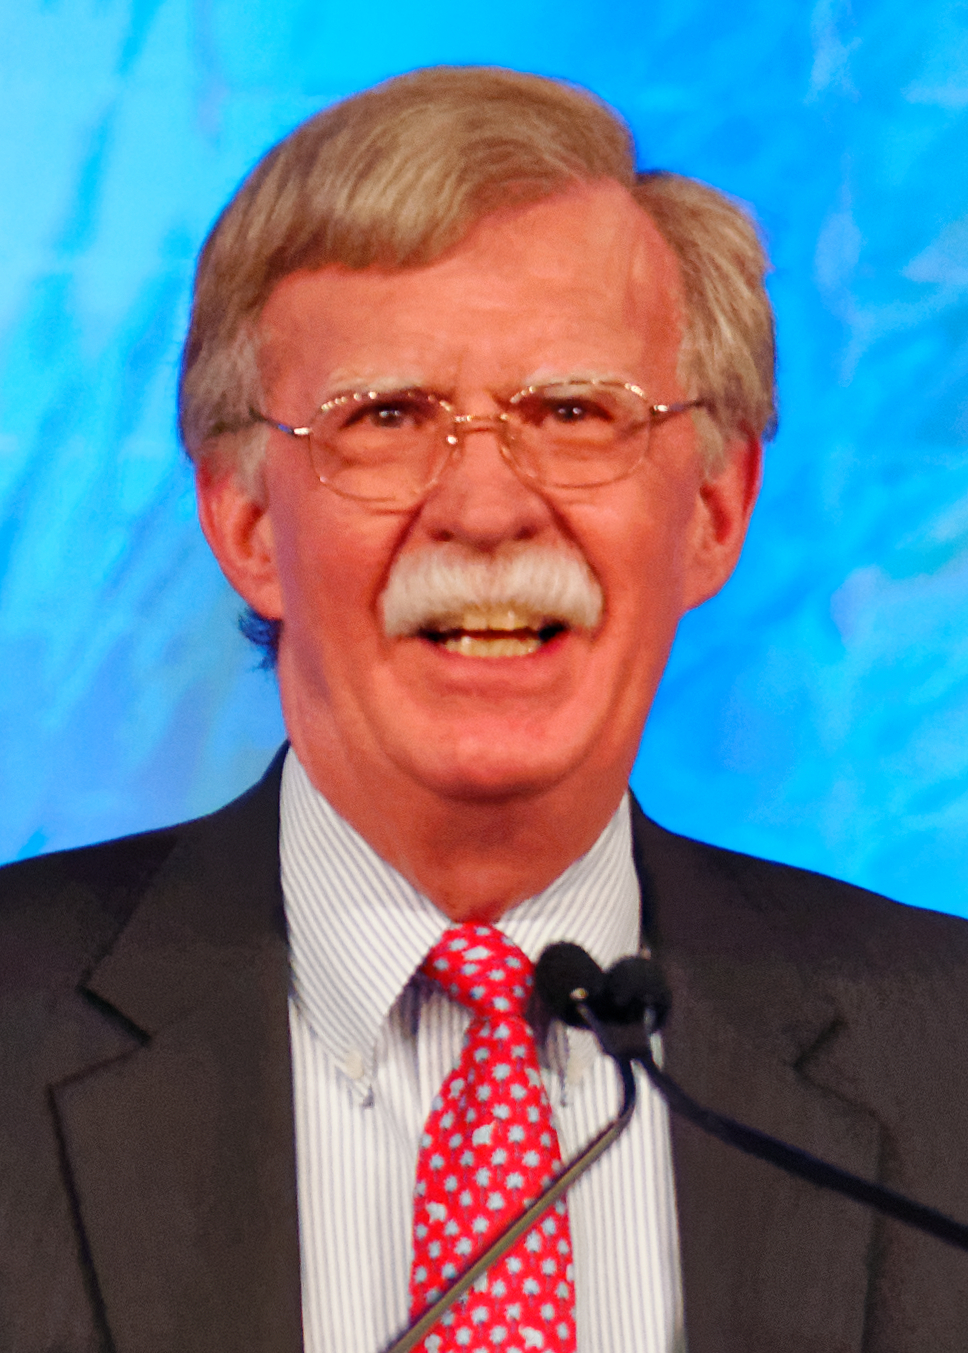 Former U.S. ambassador to the United Nations John Bolton. Credit: Michael Vadon via Wikimedia Commons.